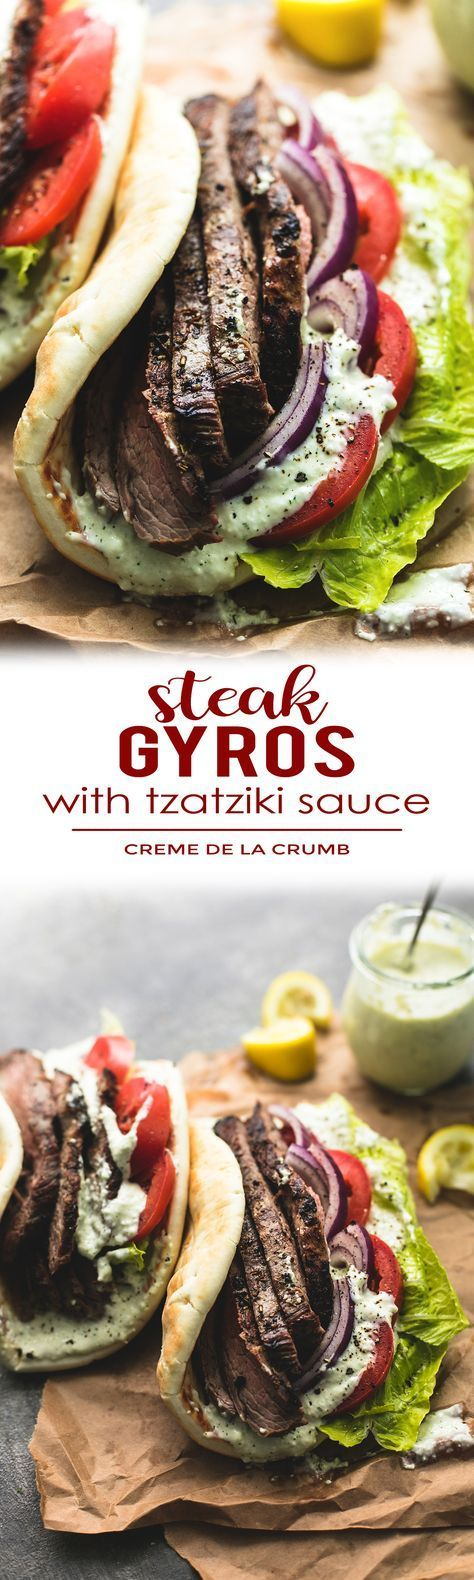 Easy and tasty flank steak gyros with tzatziki cucumber sauce are bursting with hearty flavor. A simple marinade and quick-sear yields super juicy and flavorful beef for the best homemade gyros!   lecremedelacrumb.com